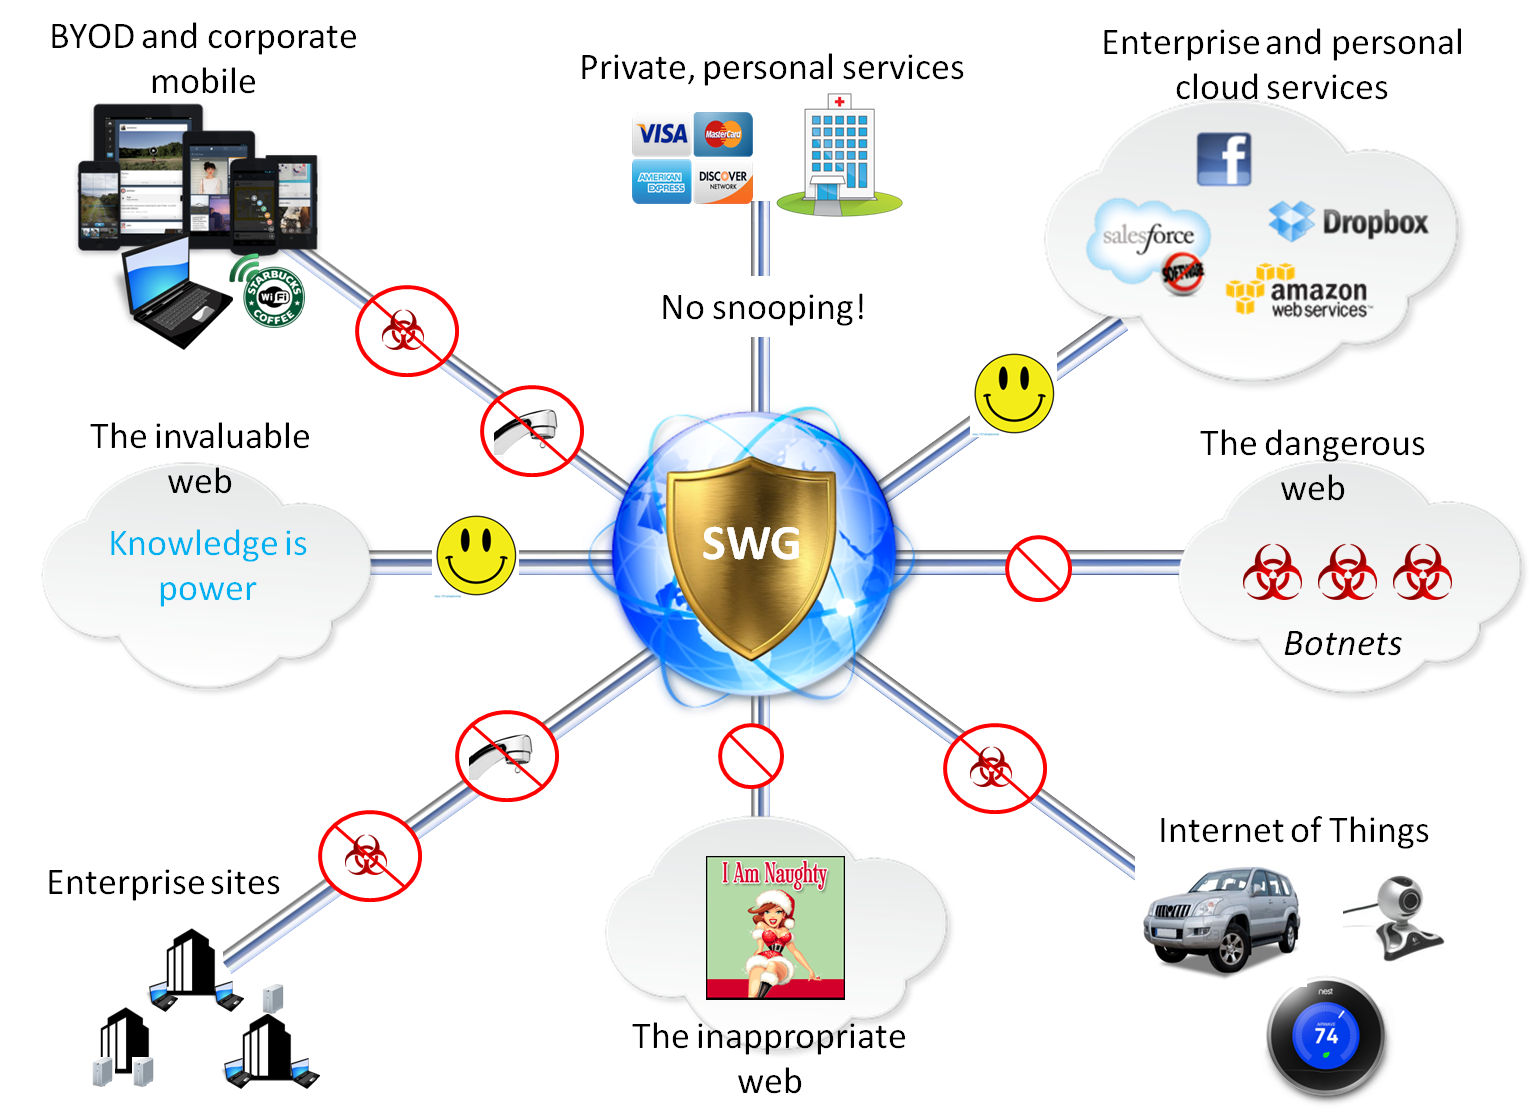 medium resolution of in recent years however the swg market has struggled to cope with cybersecurity issues cloud computing and mobility roiling the it environment